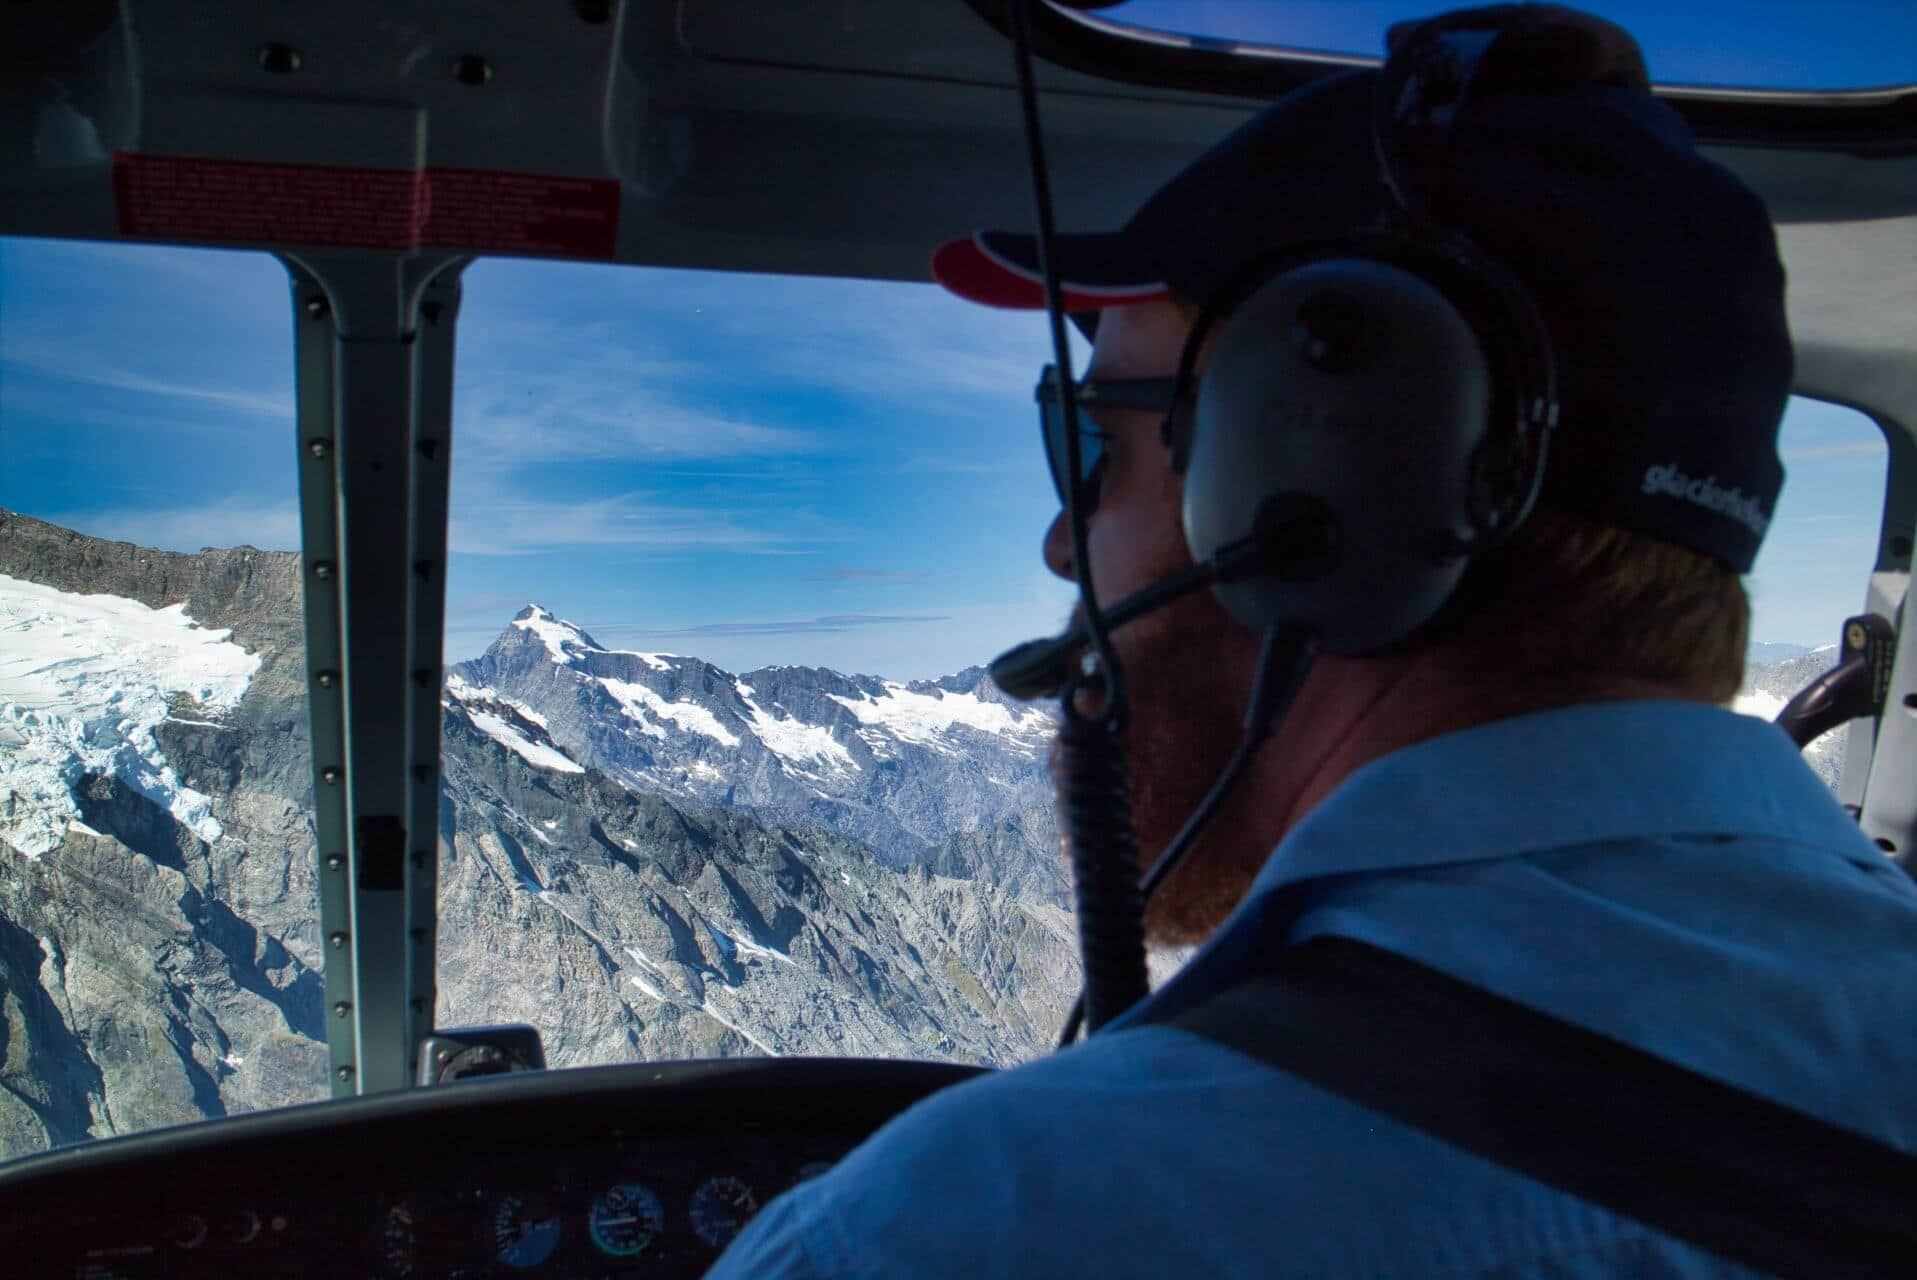 scenic-flight-glacie-helicopters-new-zealand-pilot-andrew